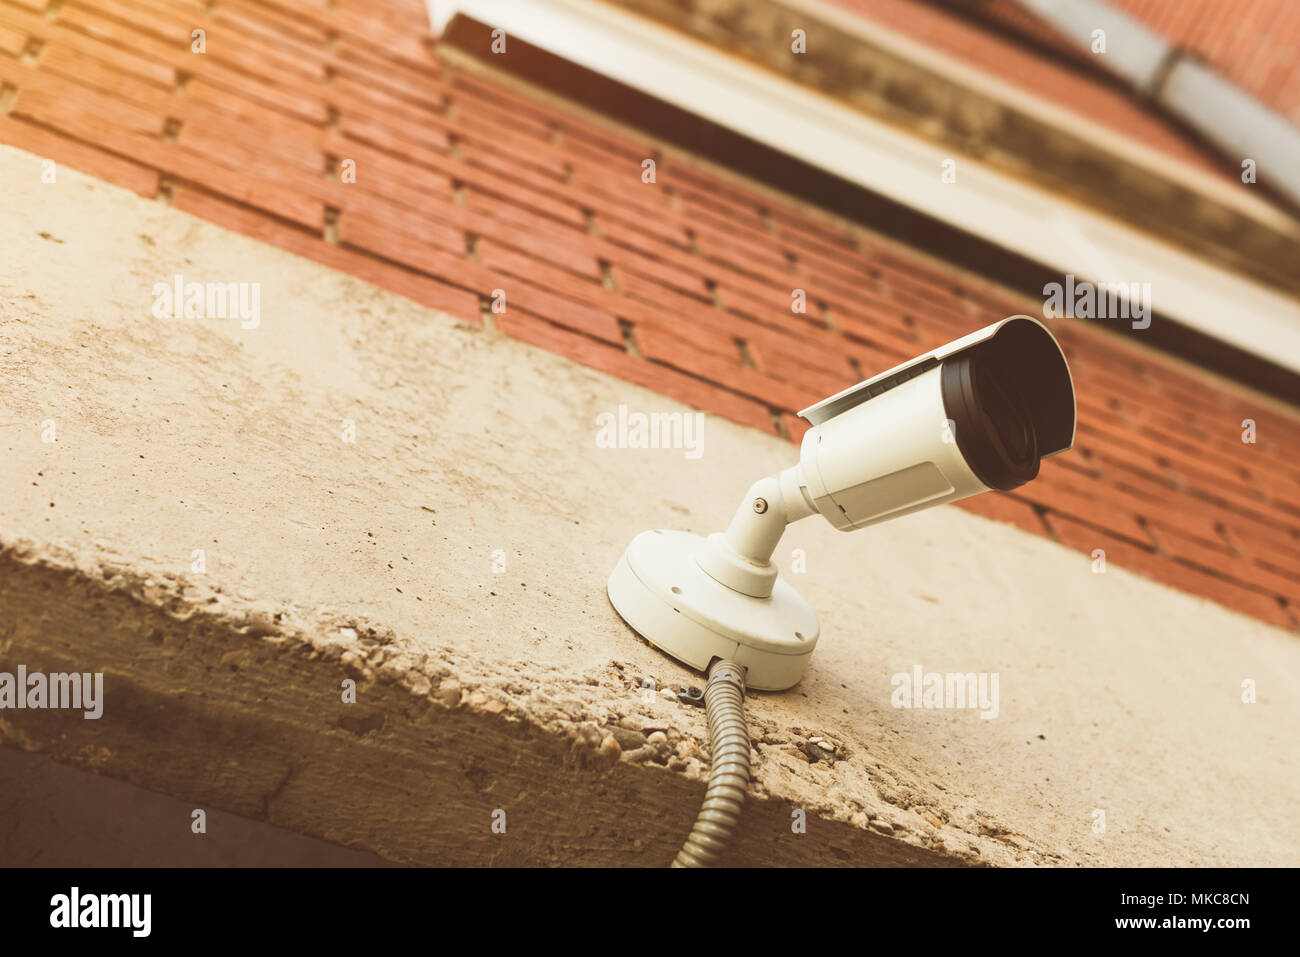 Home protection security camera mounted on house exterior wall for surveillance purposes - Stock Image